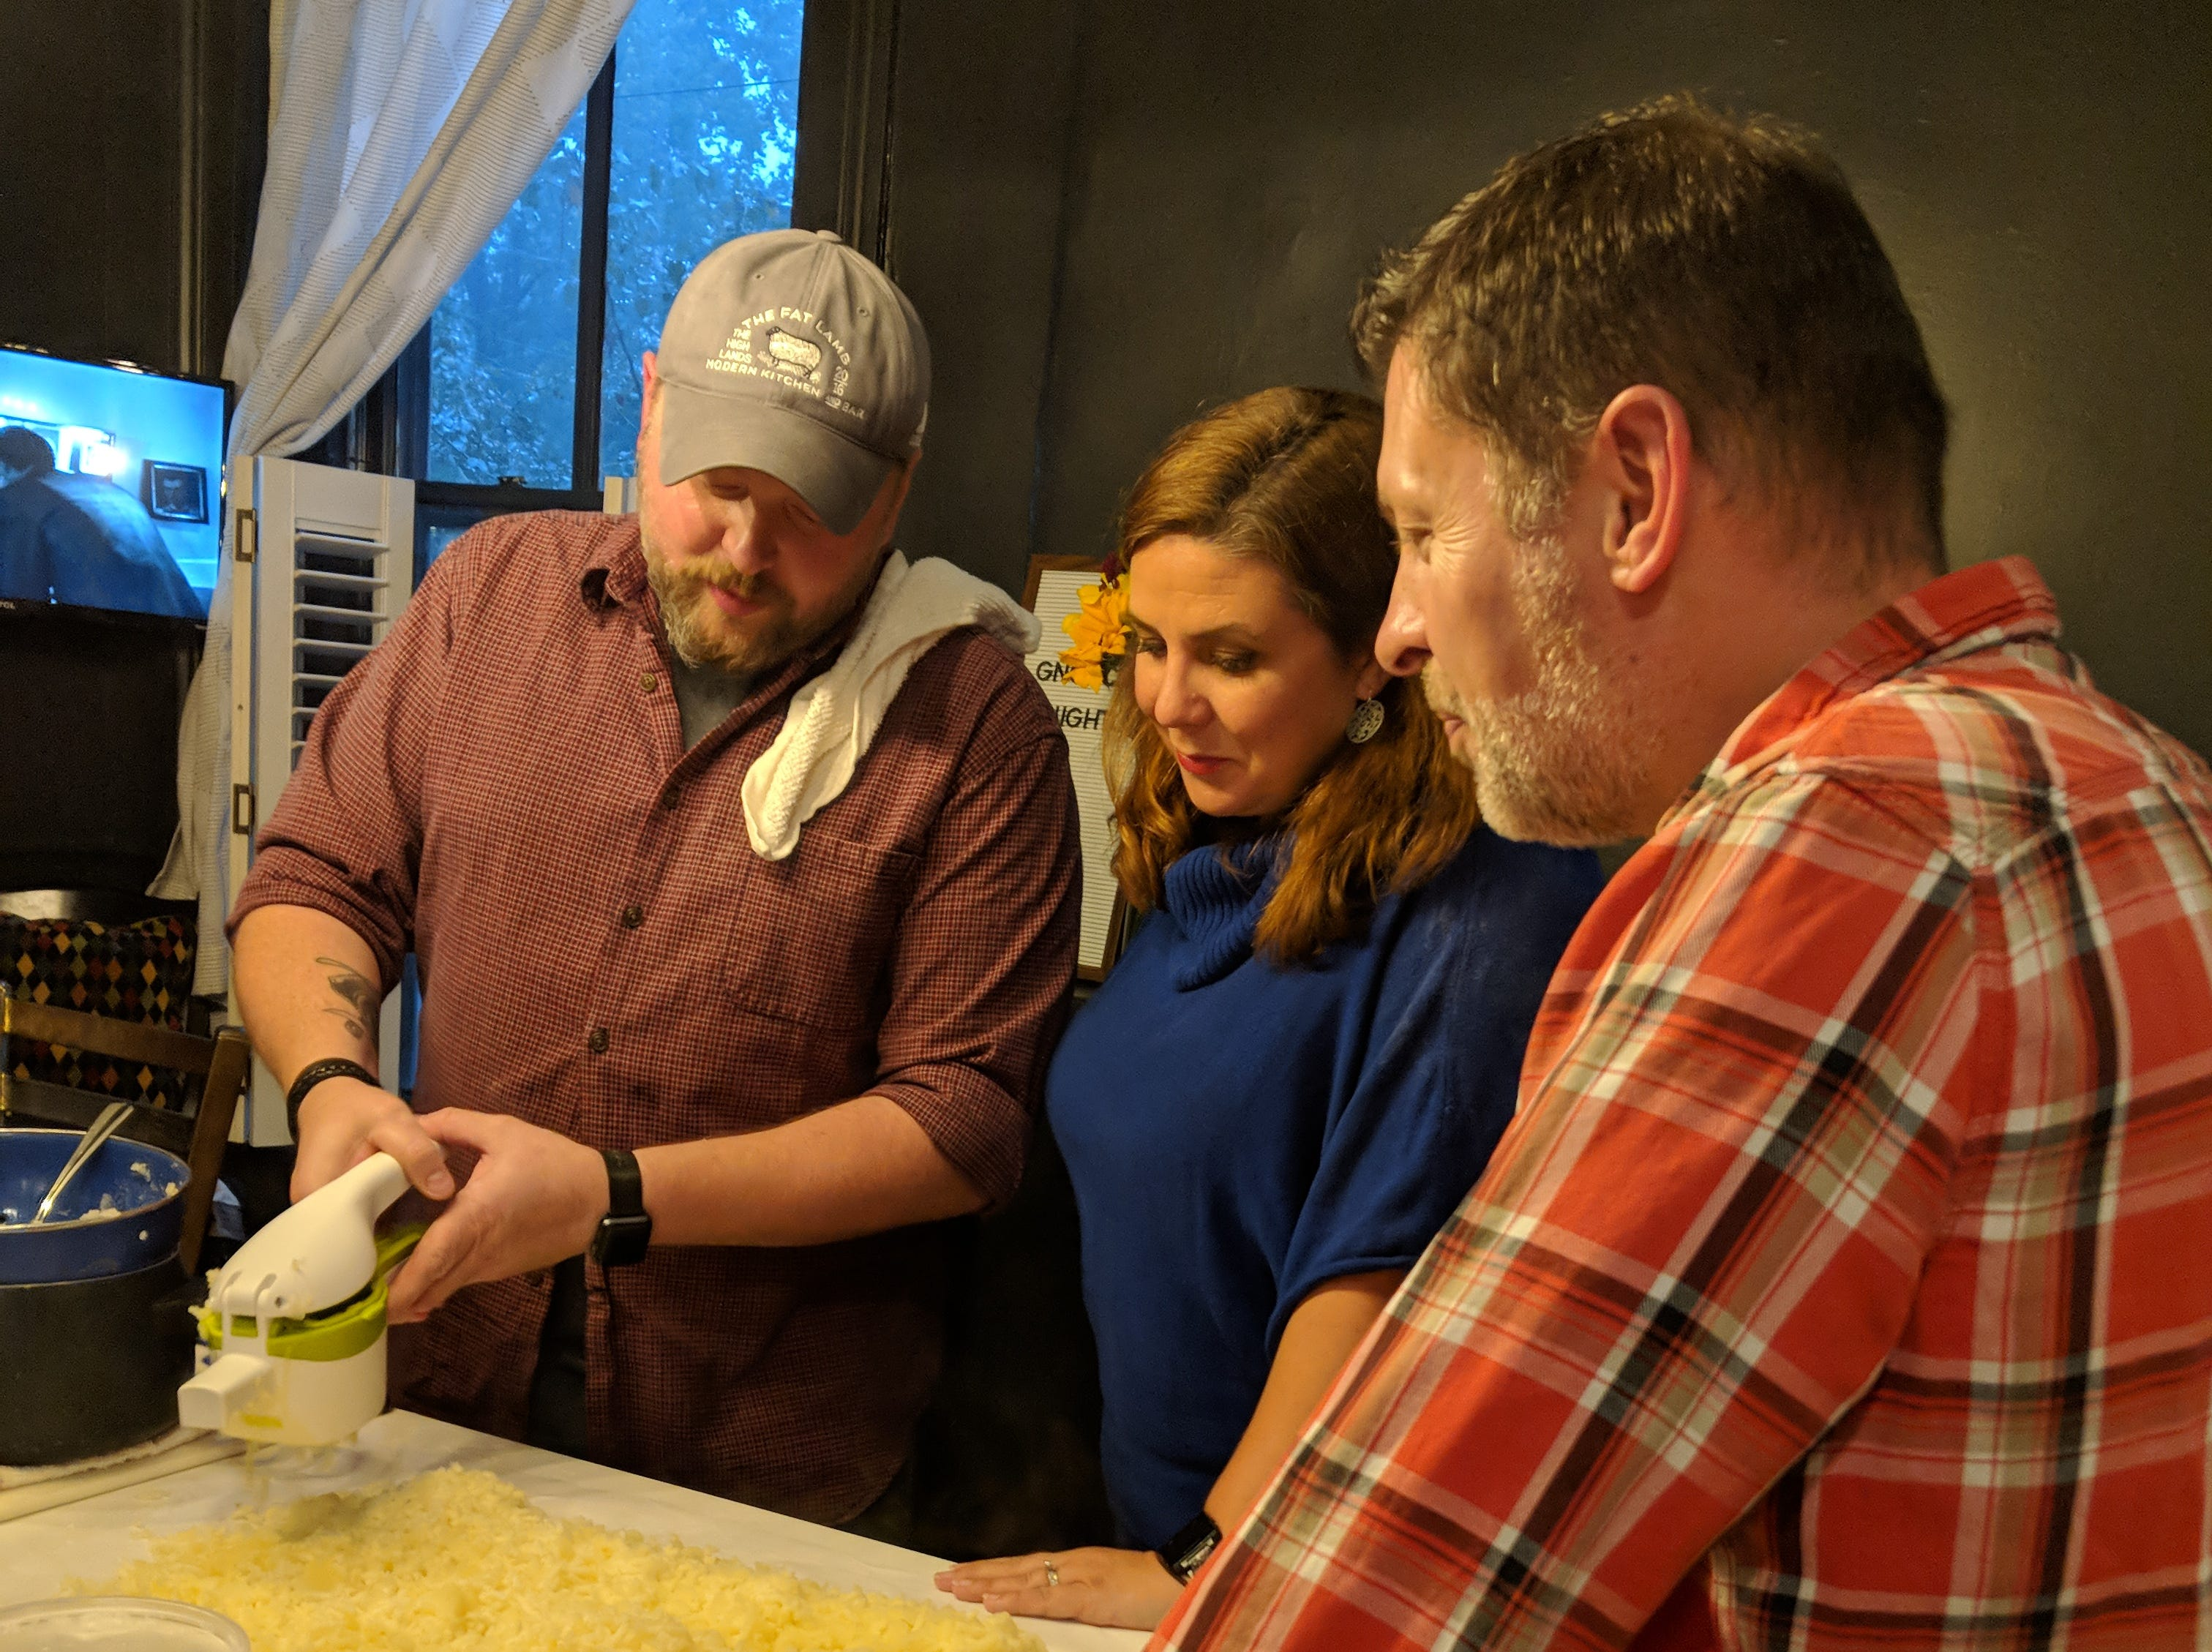 Chef Dallas McGarity, left, shows his wife, Laura, and Dana McMahan's husband Brian how to make his famous gnocchi.